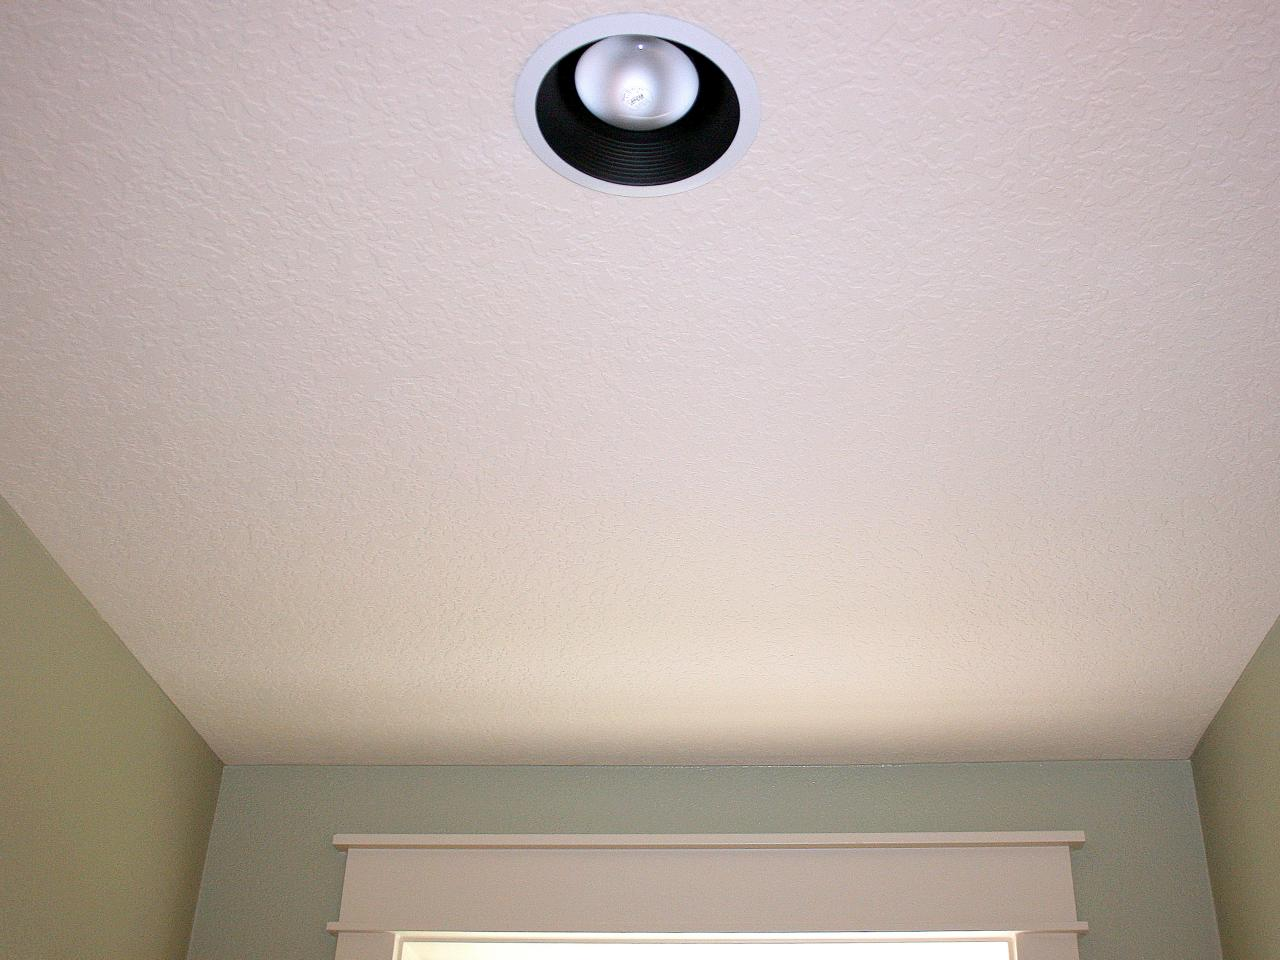 Choose Recessed Light To Convert